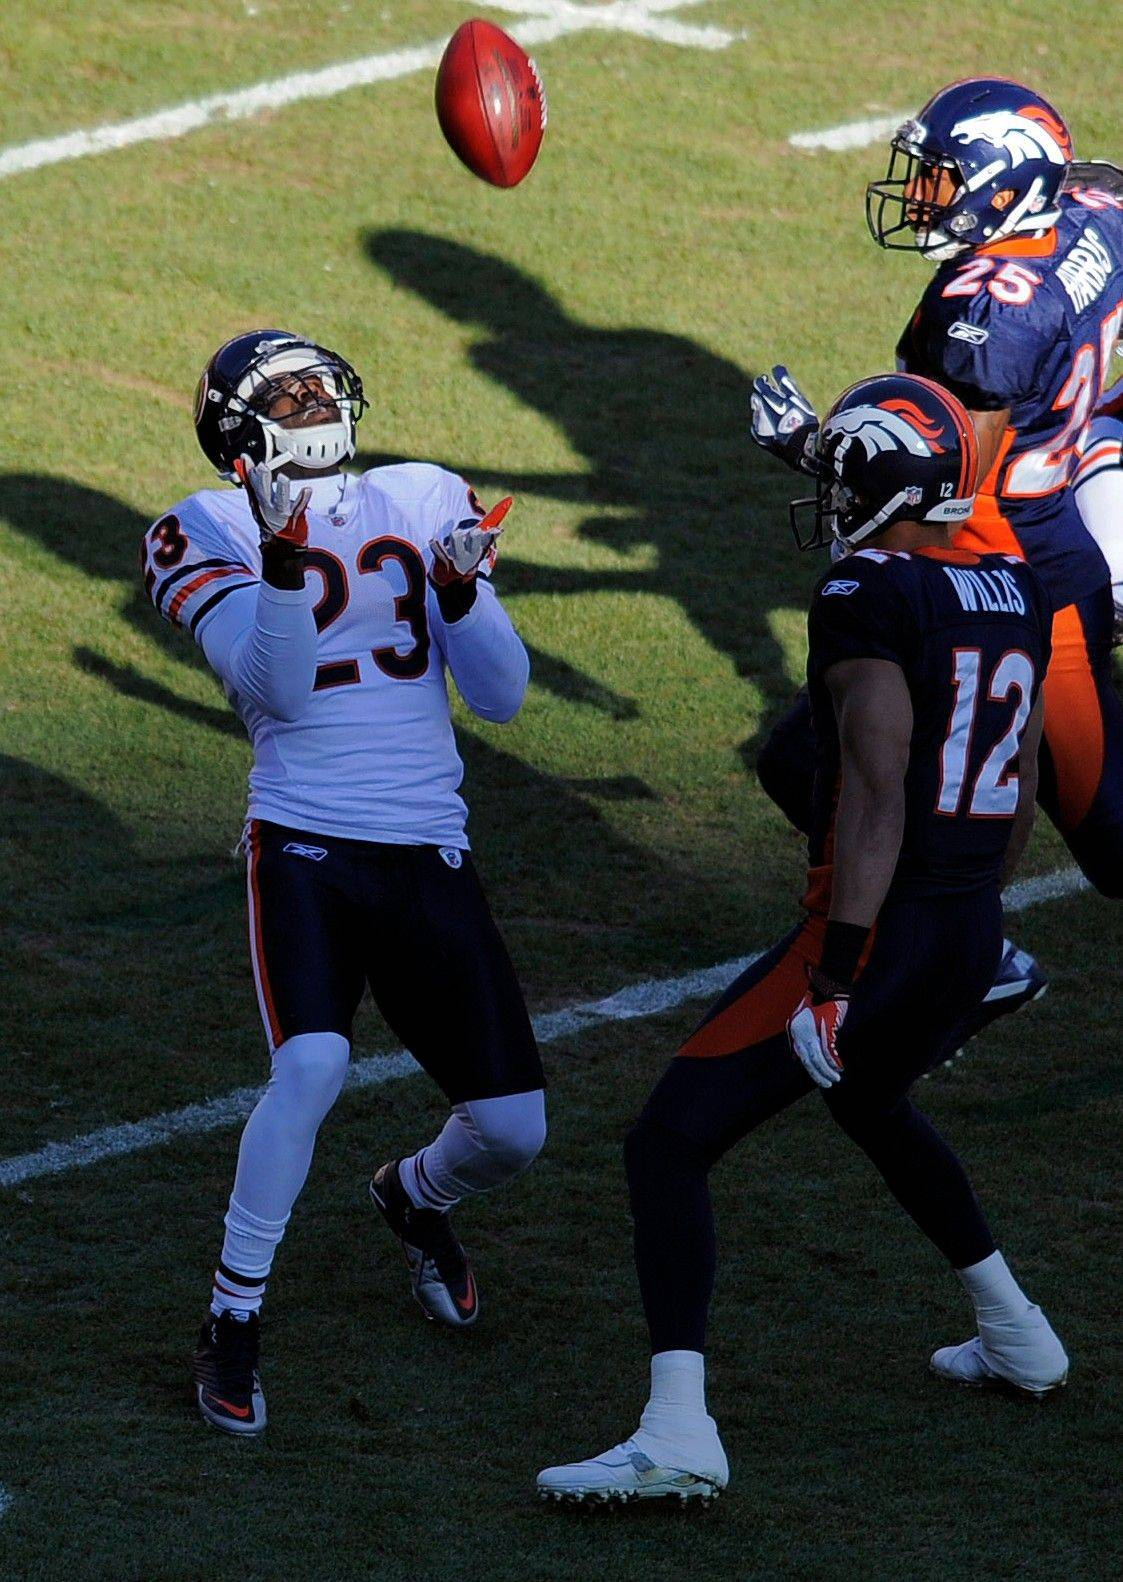 Chicago Bears wide receiver Devin Hester (23) catches a punt in the first quarter.